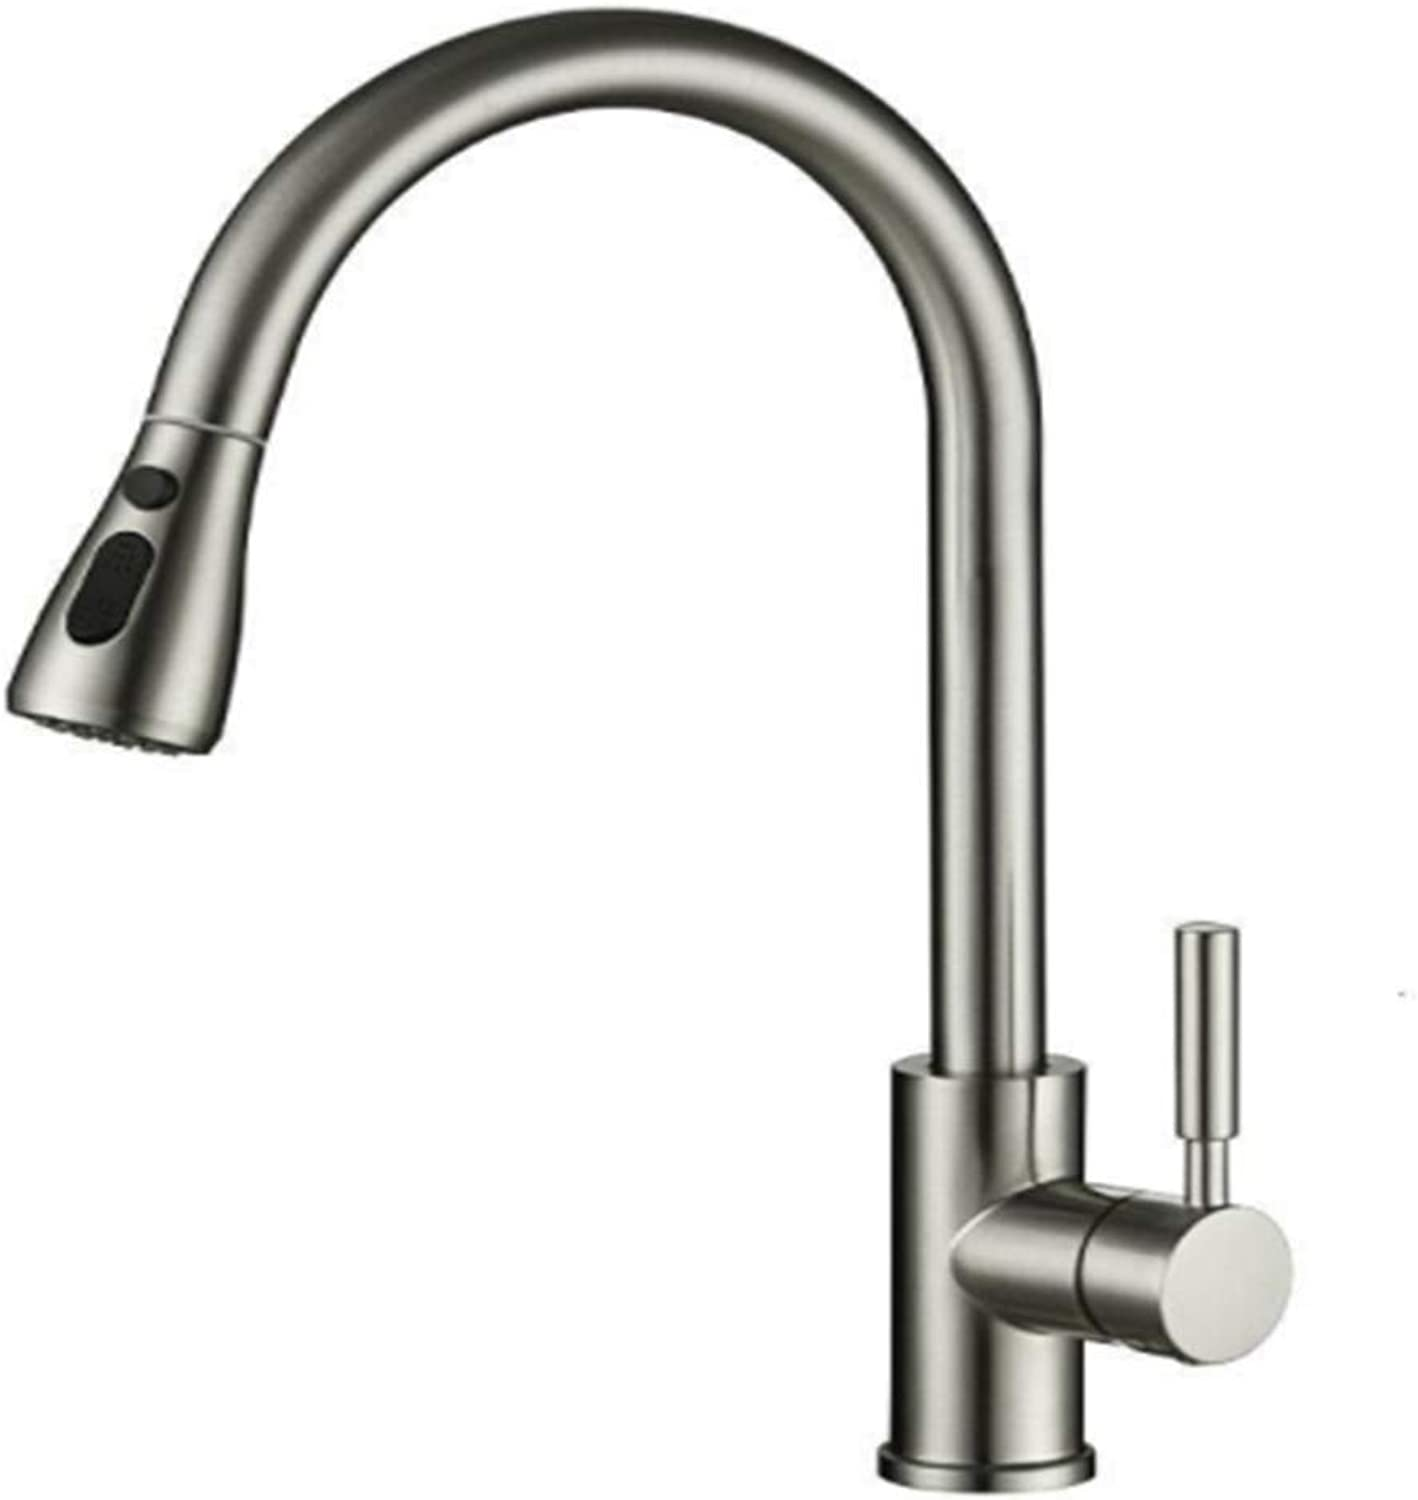 Kitchen Taps Faucetmodern Kitchen Sink Tapsstainless Steelthe Kitchen is Cold and Hot, The Modern Washing Basin, The Universal Faucet and The Washing Basin are All Directions.